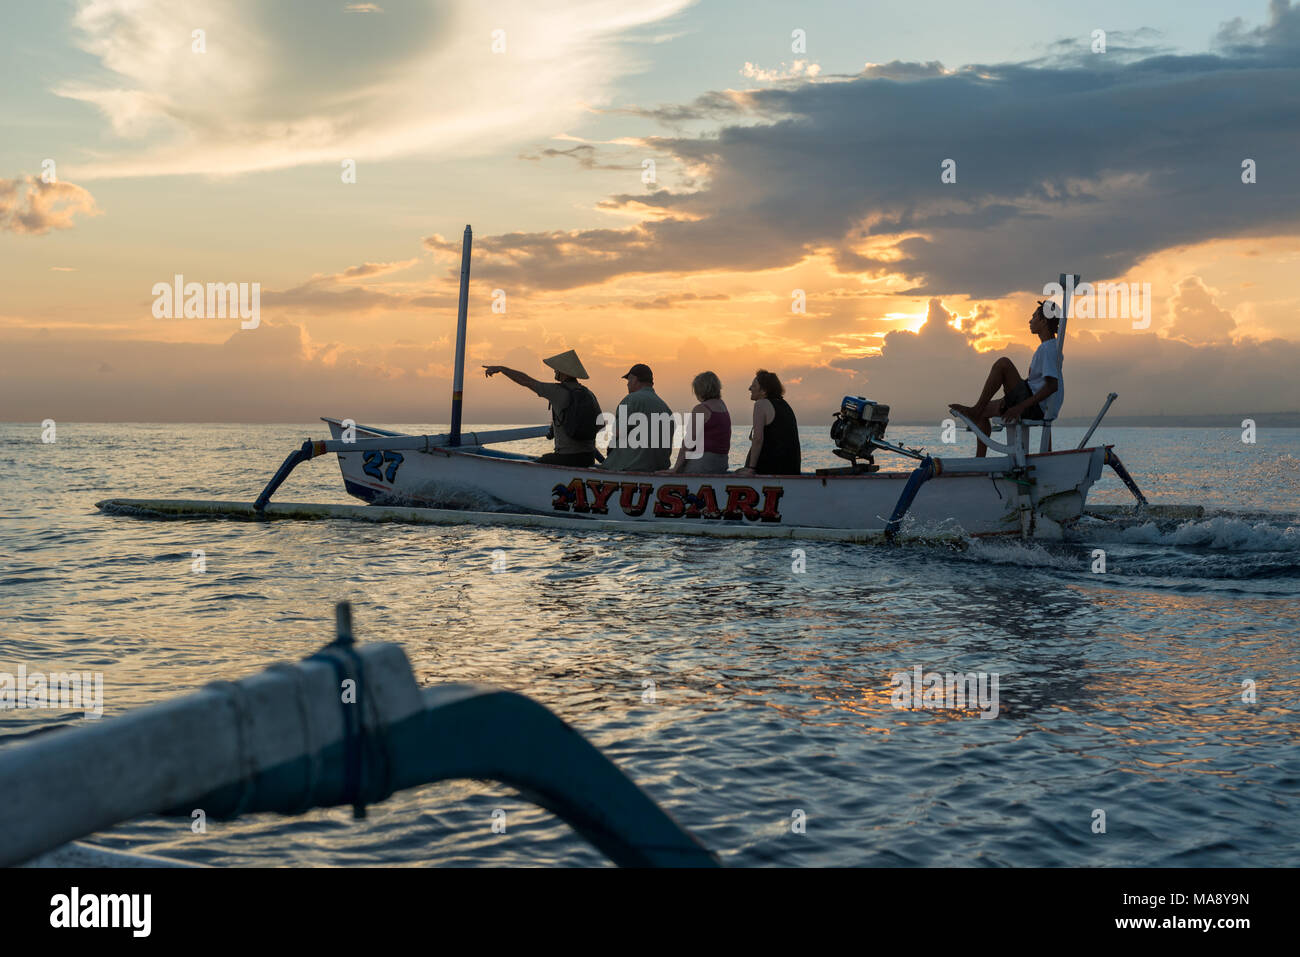 Tourists go on a dolphin watching tour - Stock Image